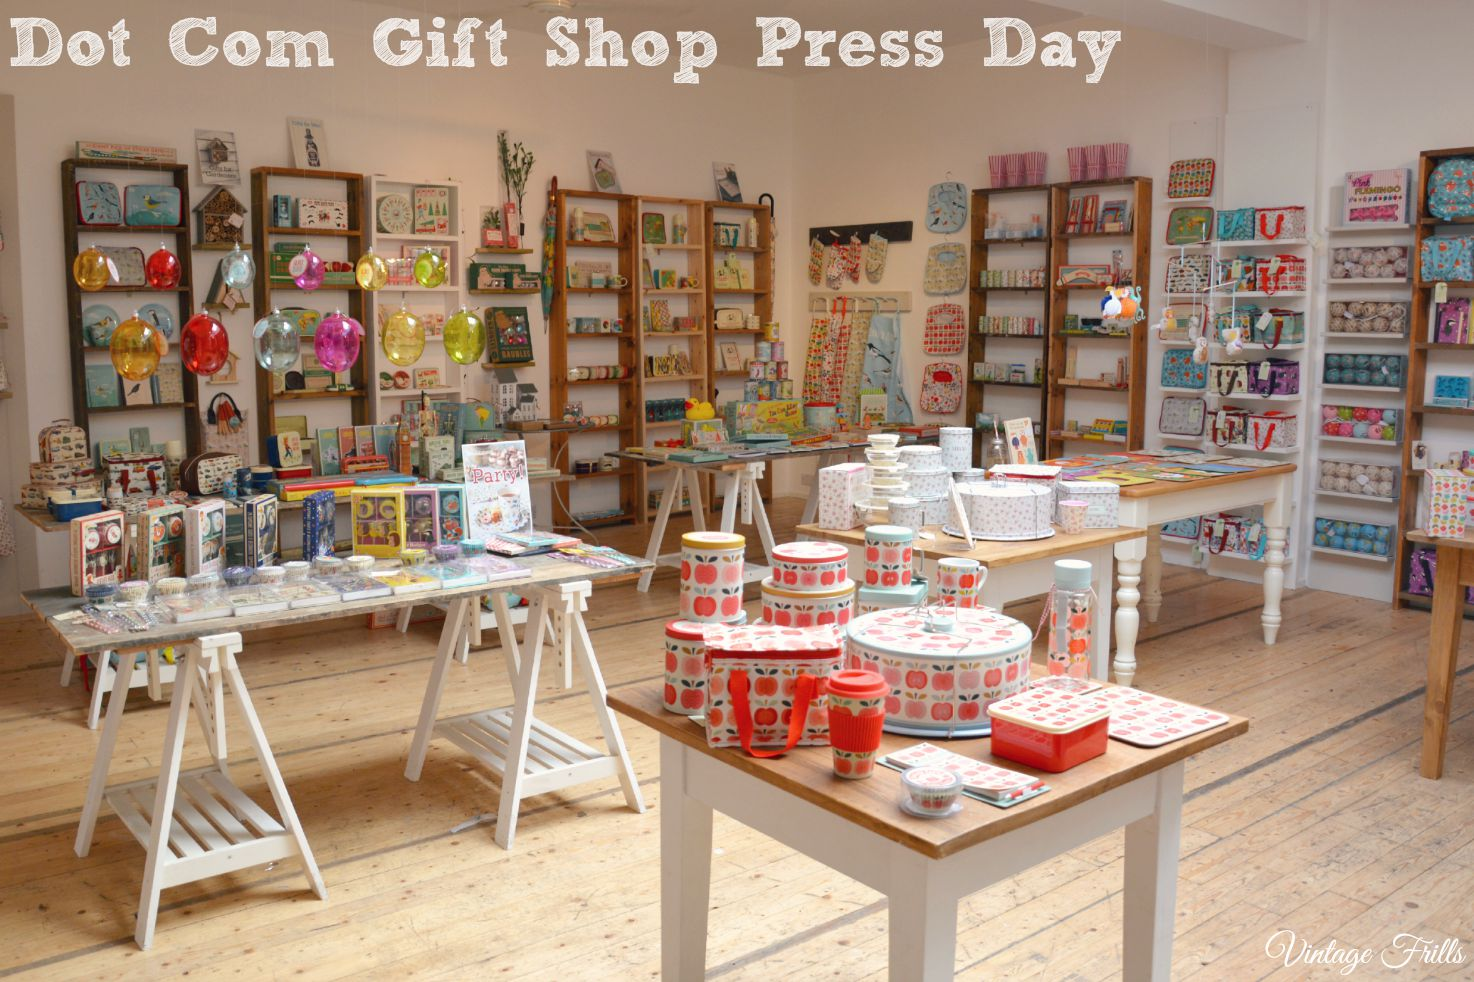 Dot Com Gift Shop Press Day and Christmas Preview